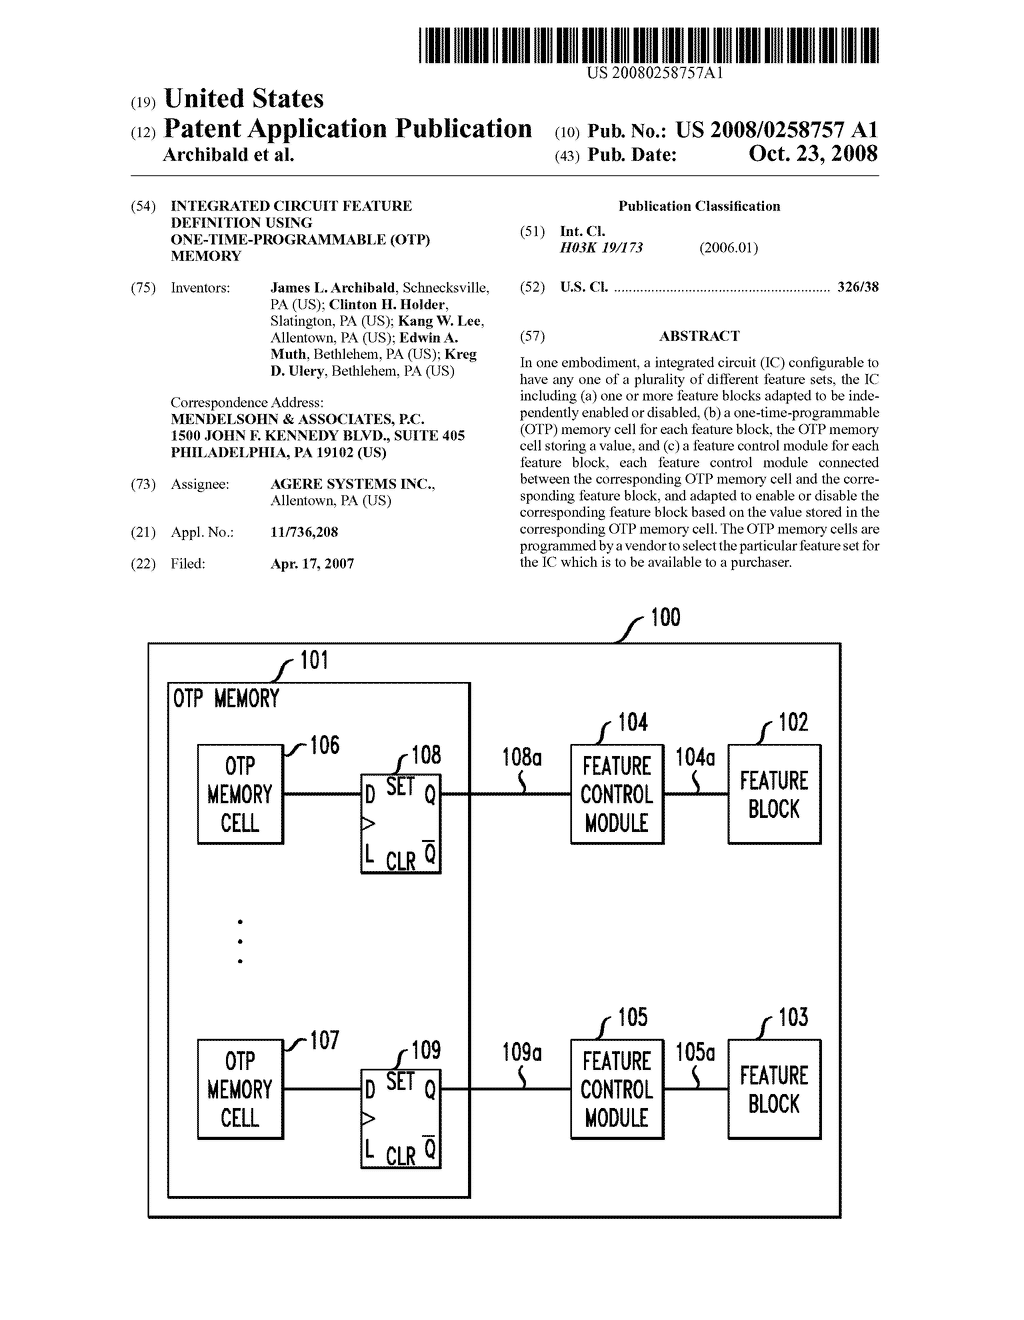 Integrated Circuit Feature Definition Using One Time Programmable Popular Otp Memory Diagram Schematic And Image 01